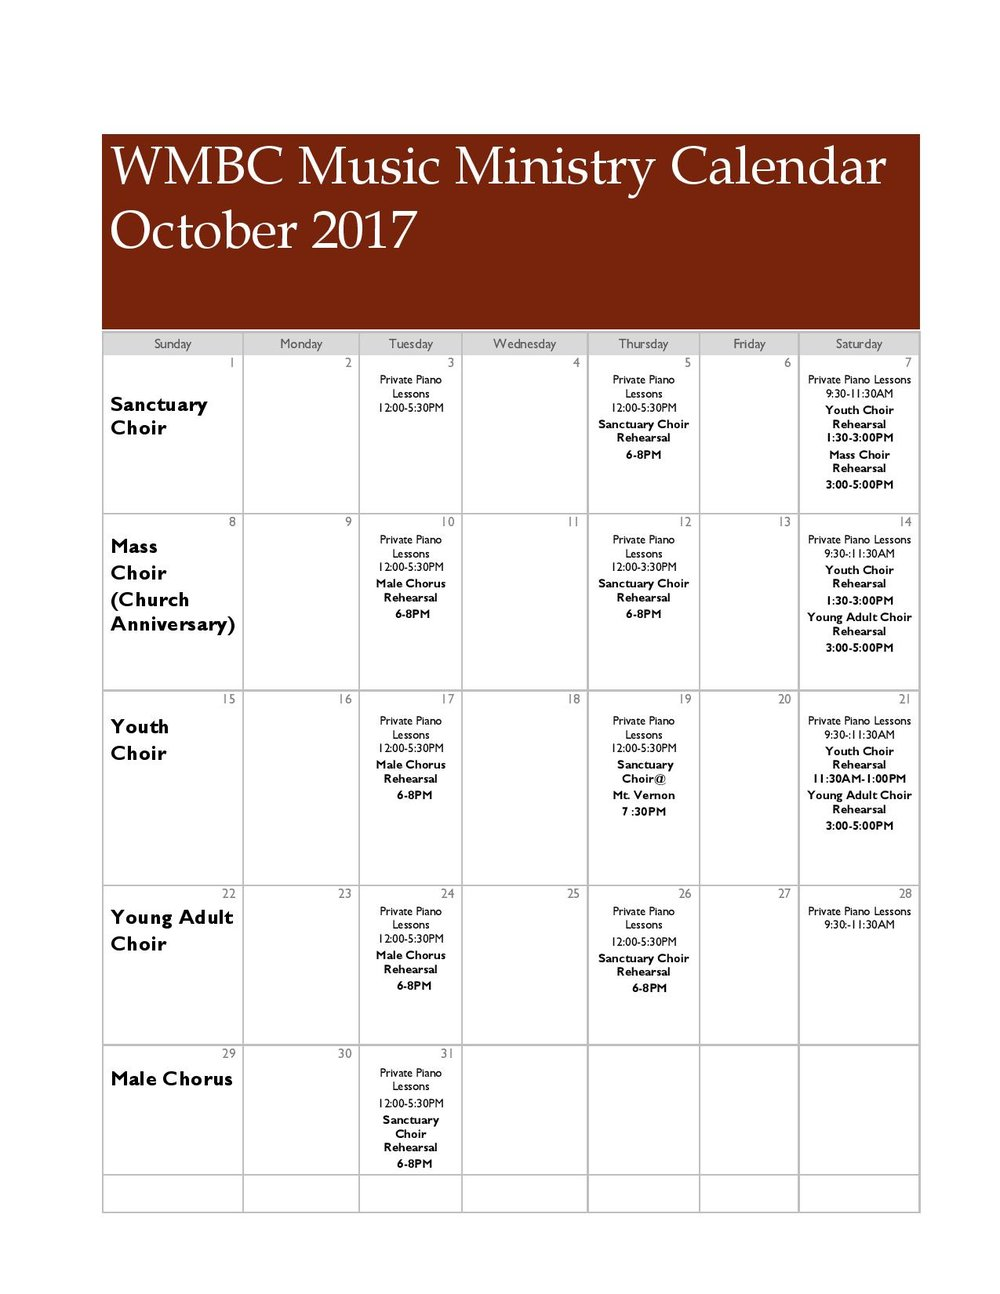 WMBC Music Ministry Newsletter October 2017  (Autosaved)-page-005.jpg